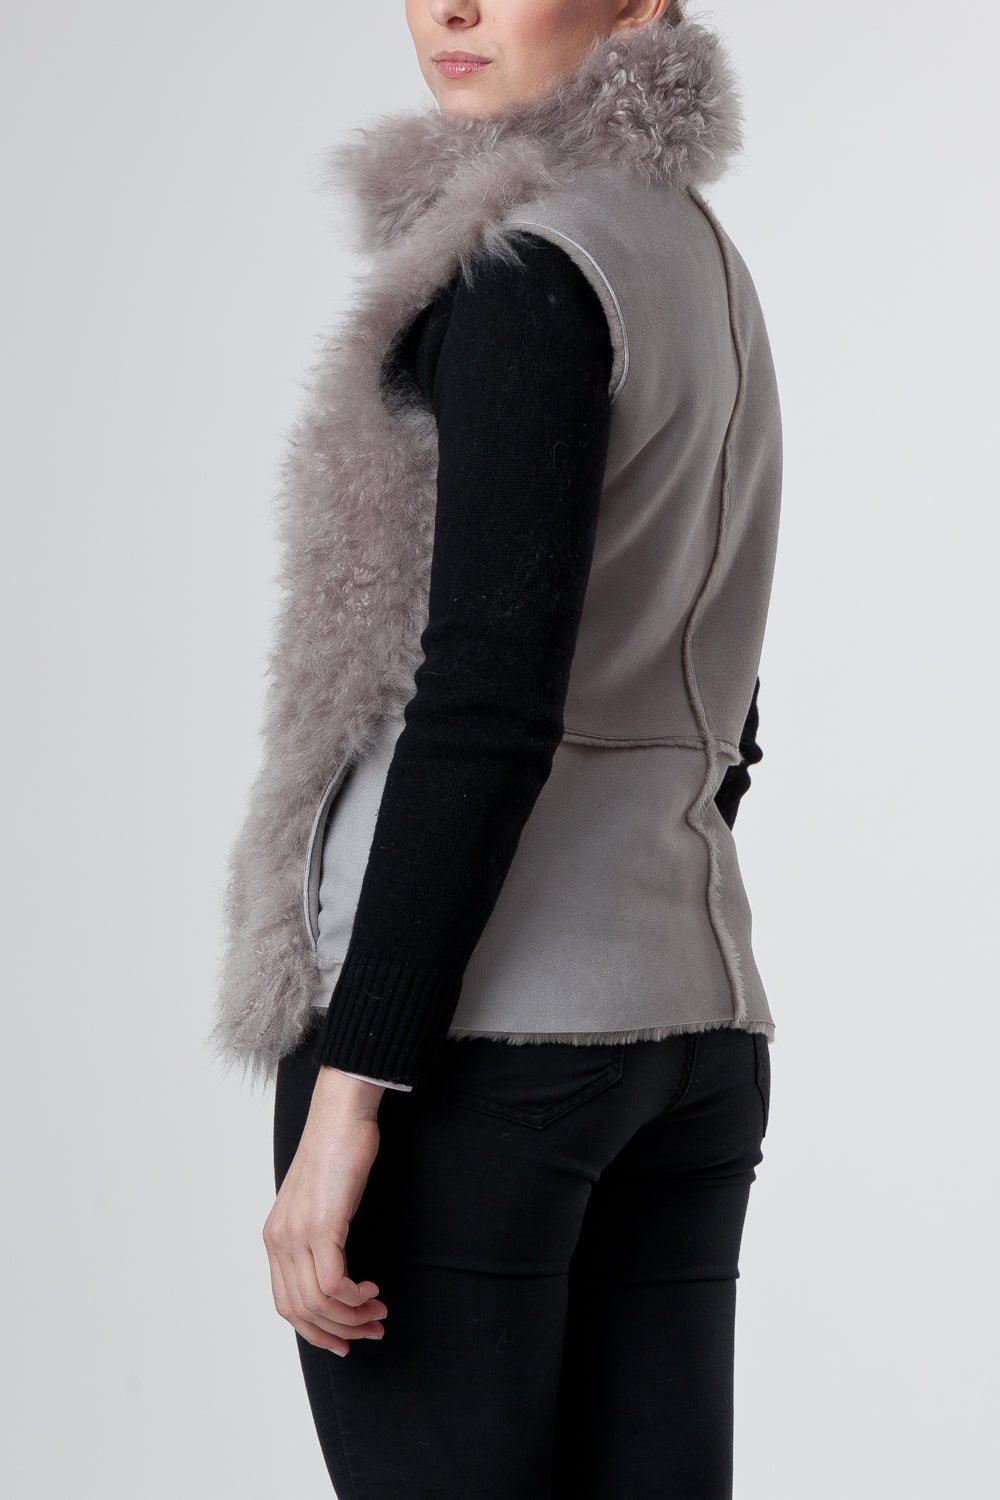 Il Gilet Corto Grigio - The Short Gray Vest